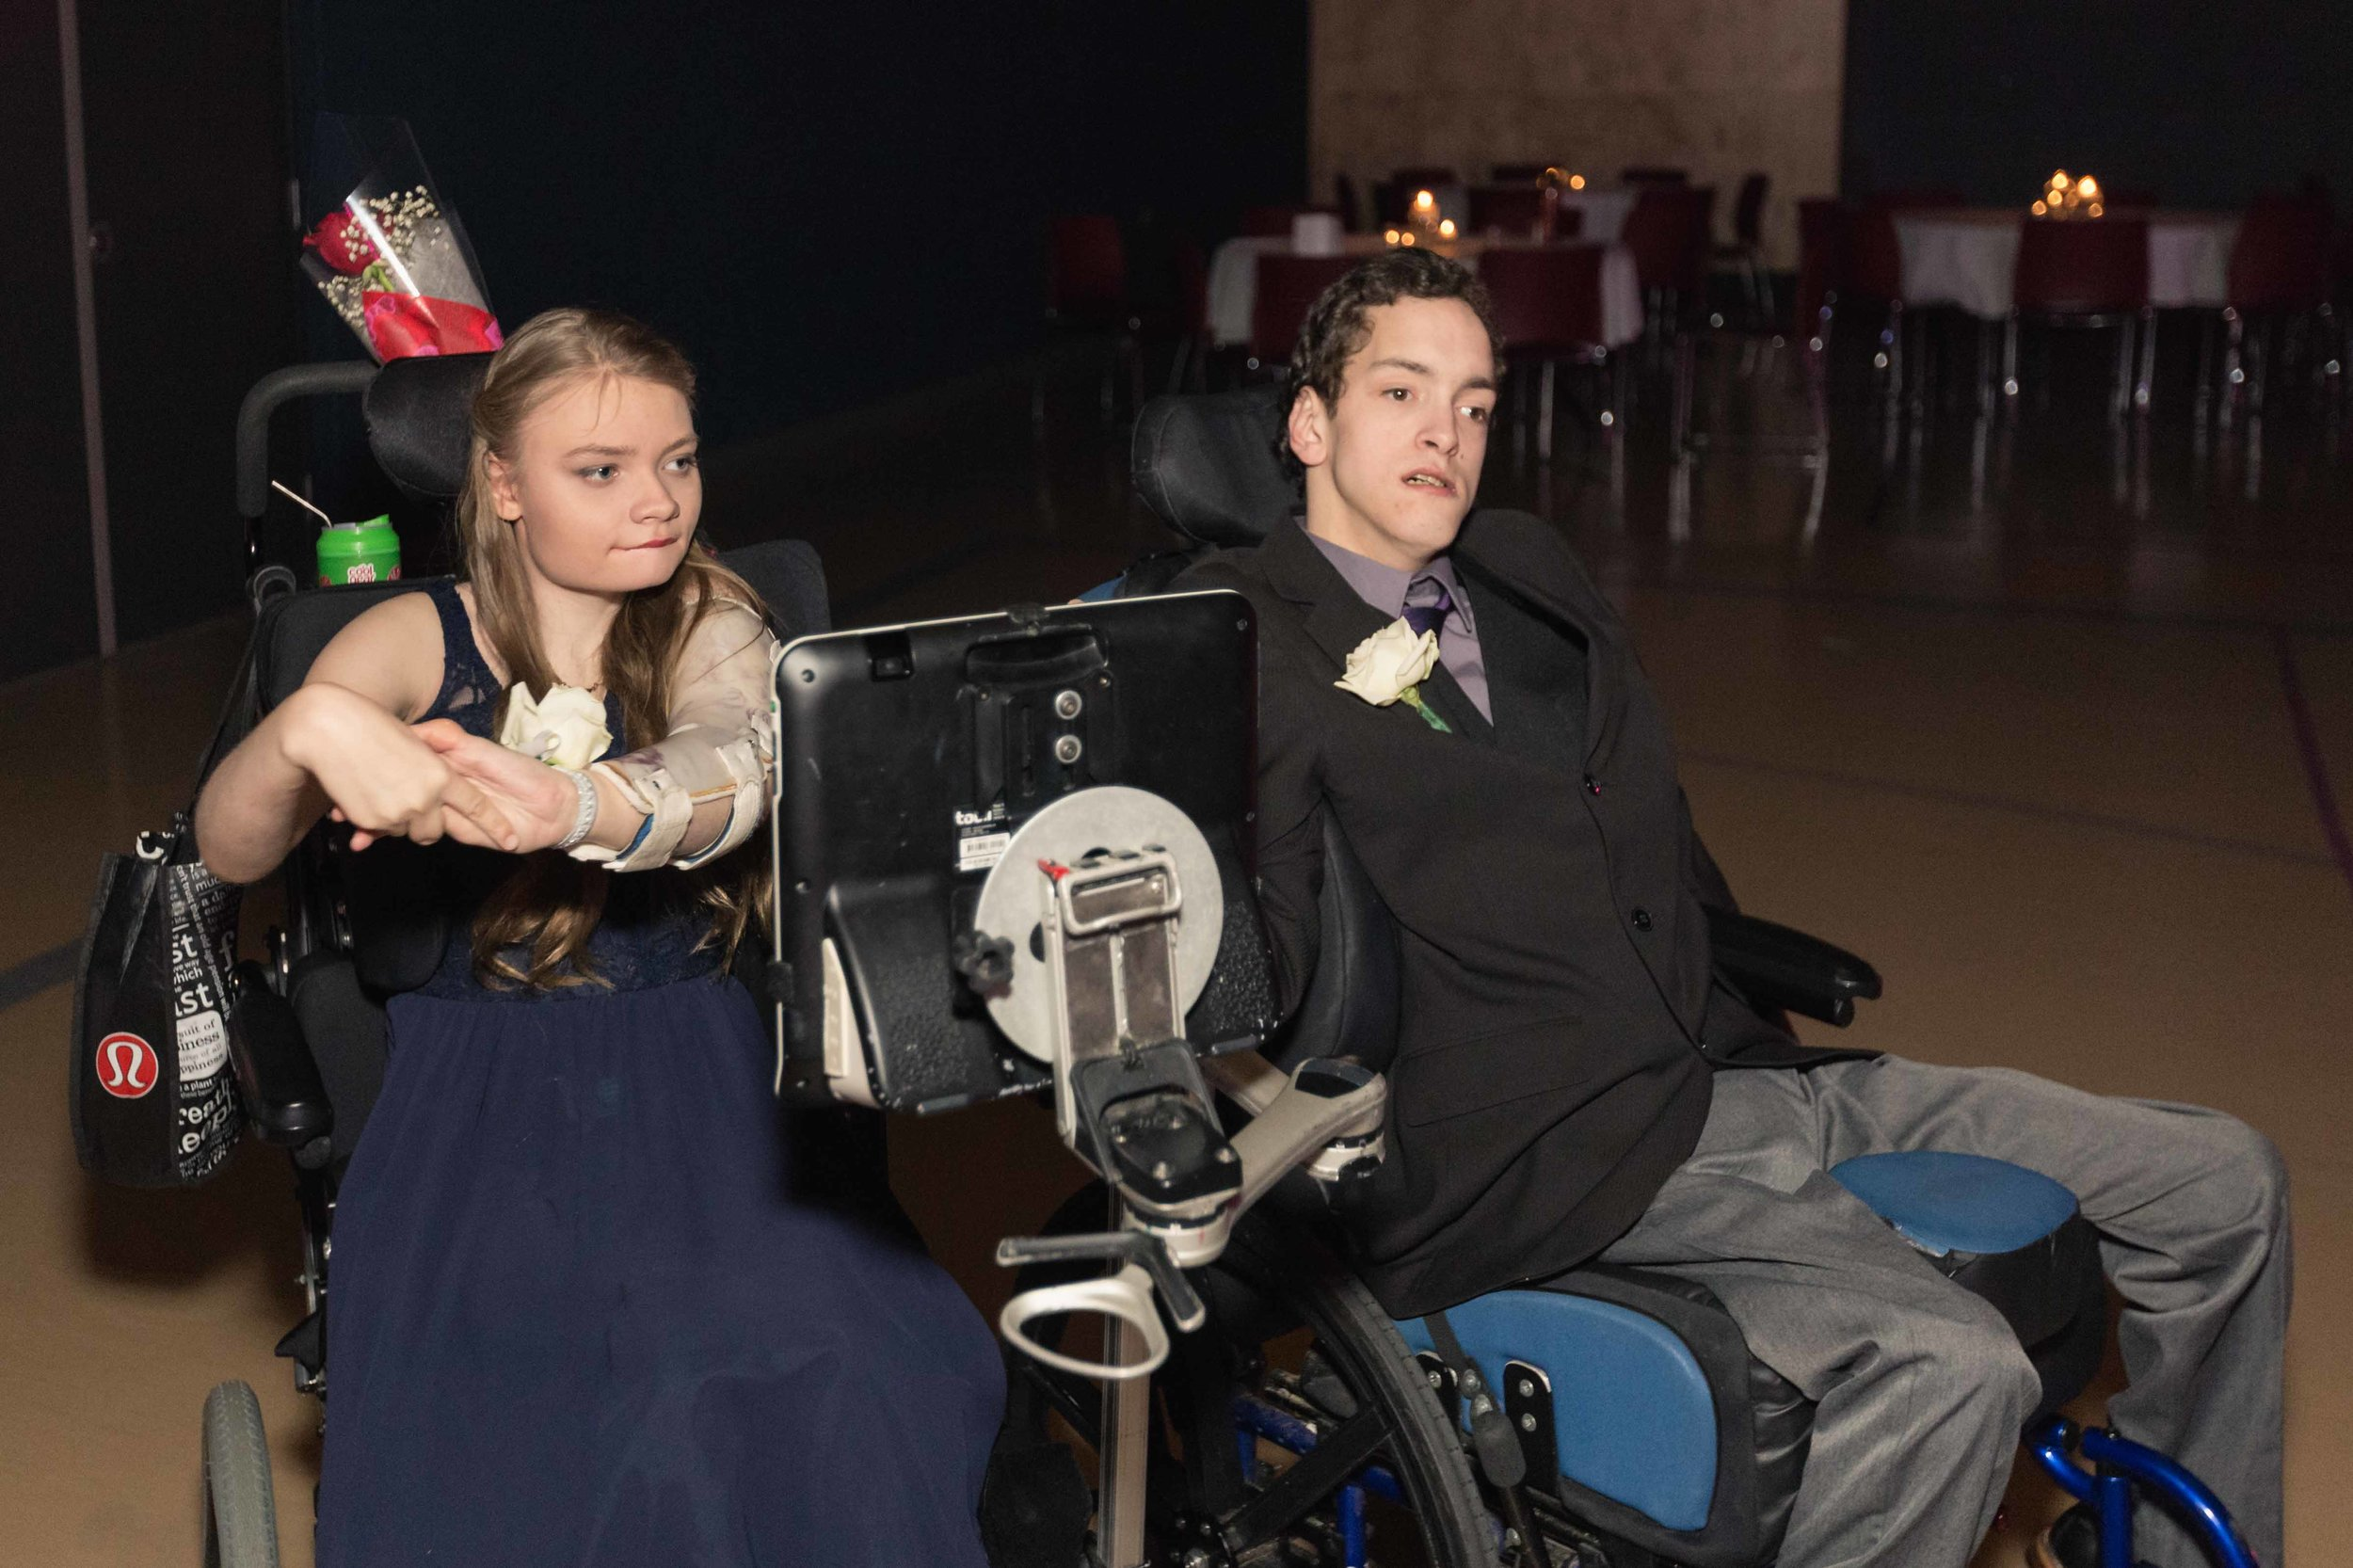 InBetweenDreamsWedding_NightToShine2018_HorizonChurch (185 of 514).jpg